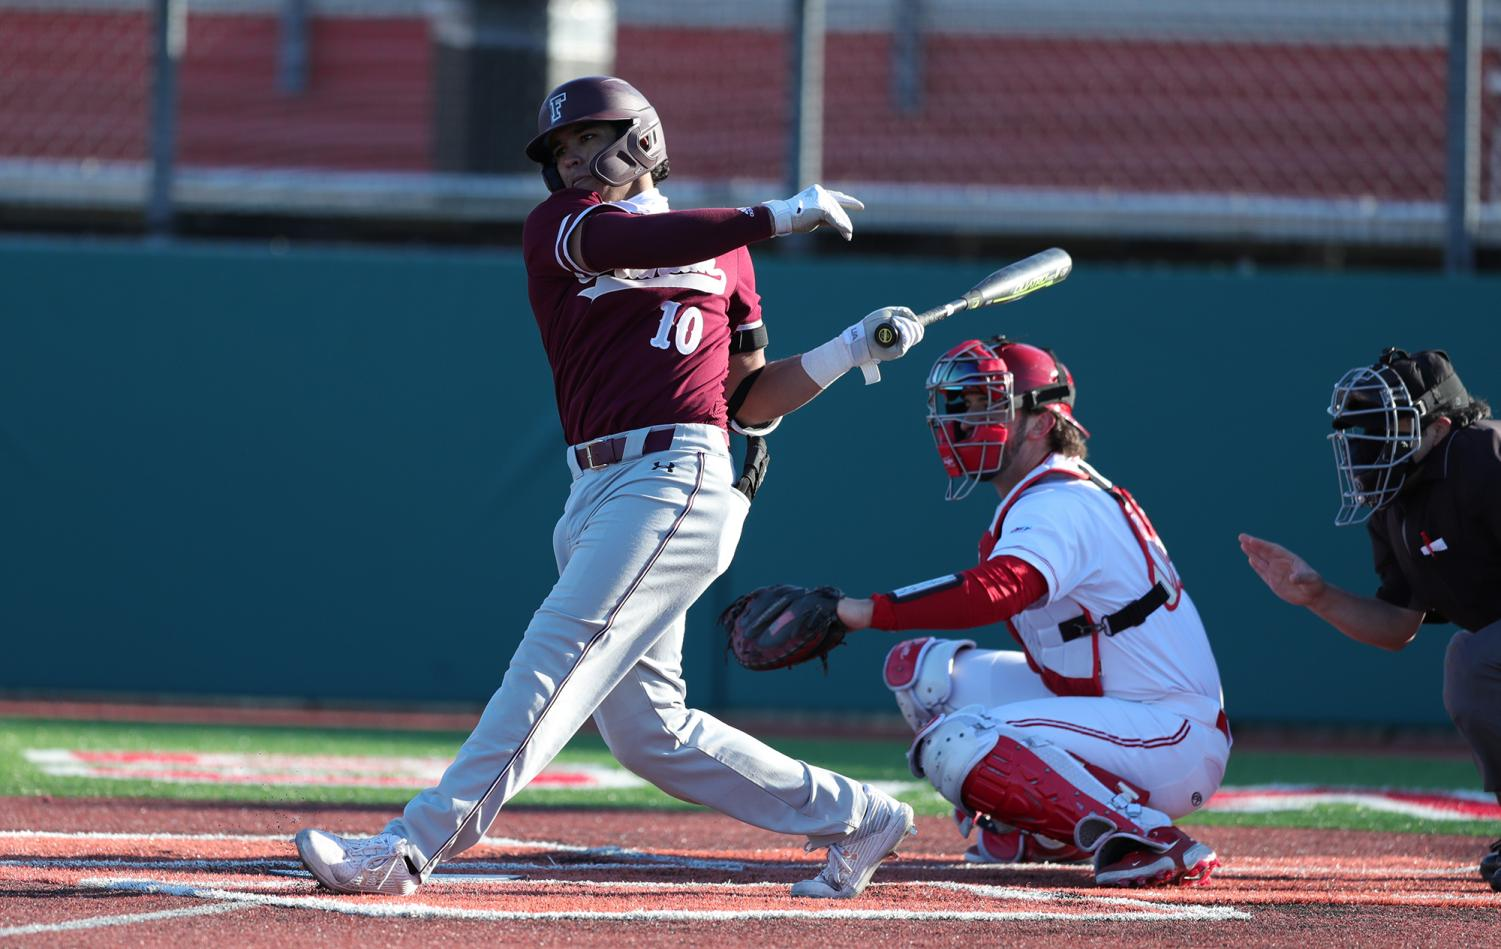 Fordham baseball player C.J. Vazquez up at bat